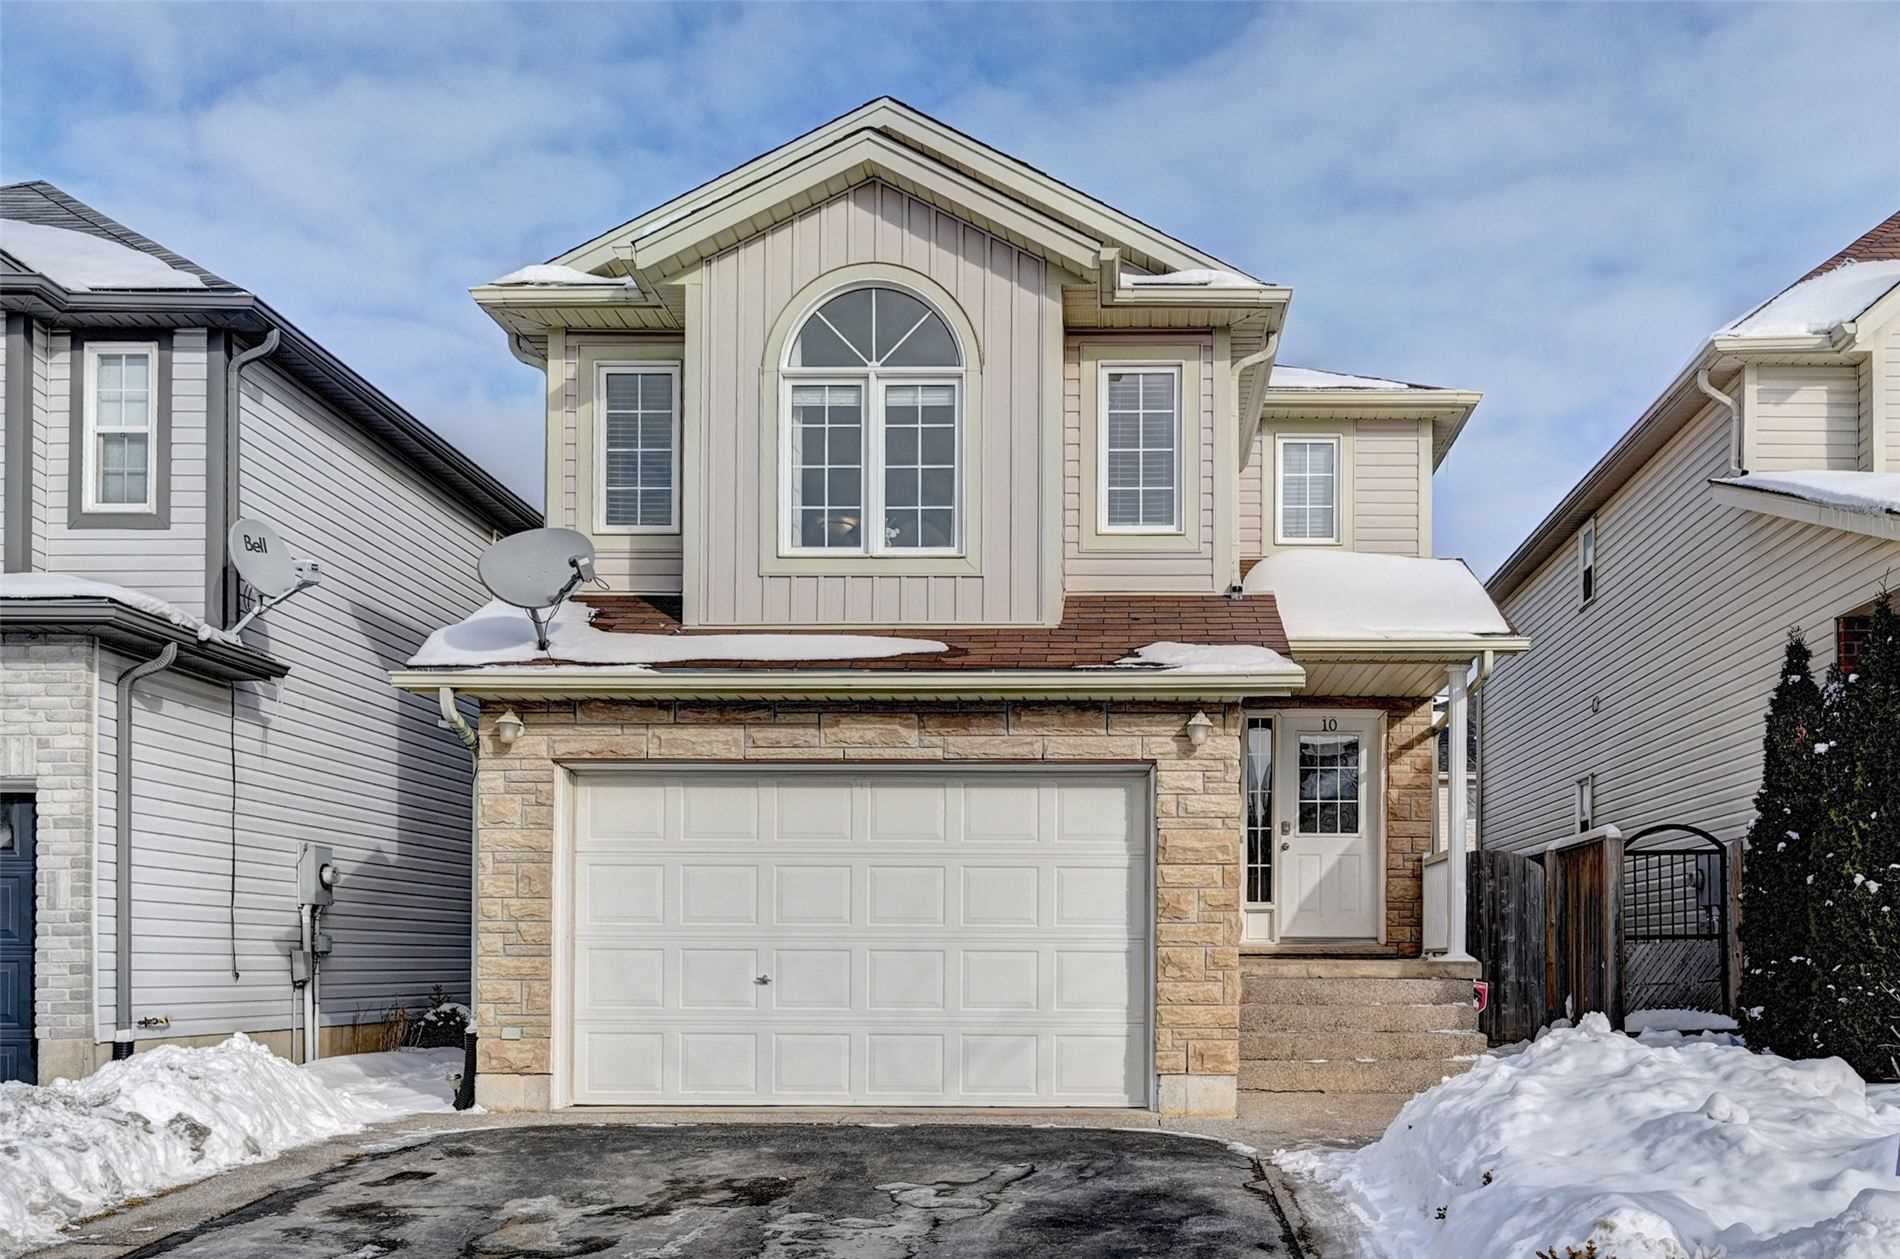 pictures of house for sale MLS: X4694954 located at 10 Verona St, Kitchener N2R1T4